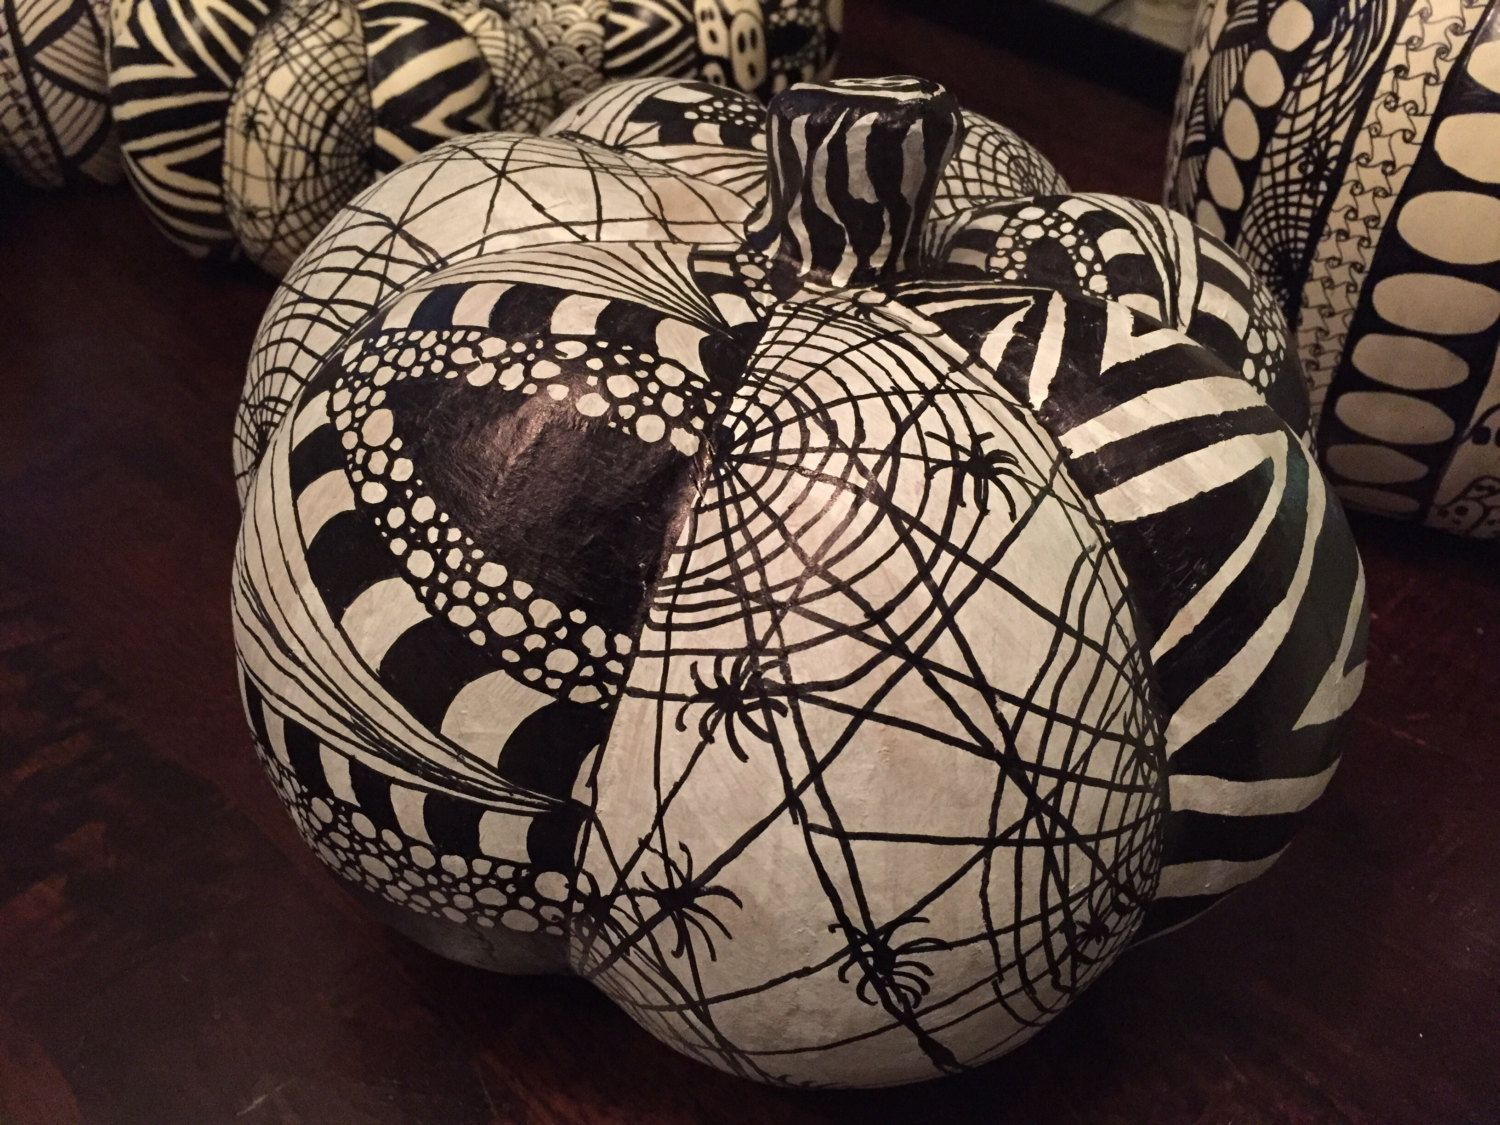 White Artificial Pumpkins Hand Decorated With Zentangle